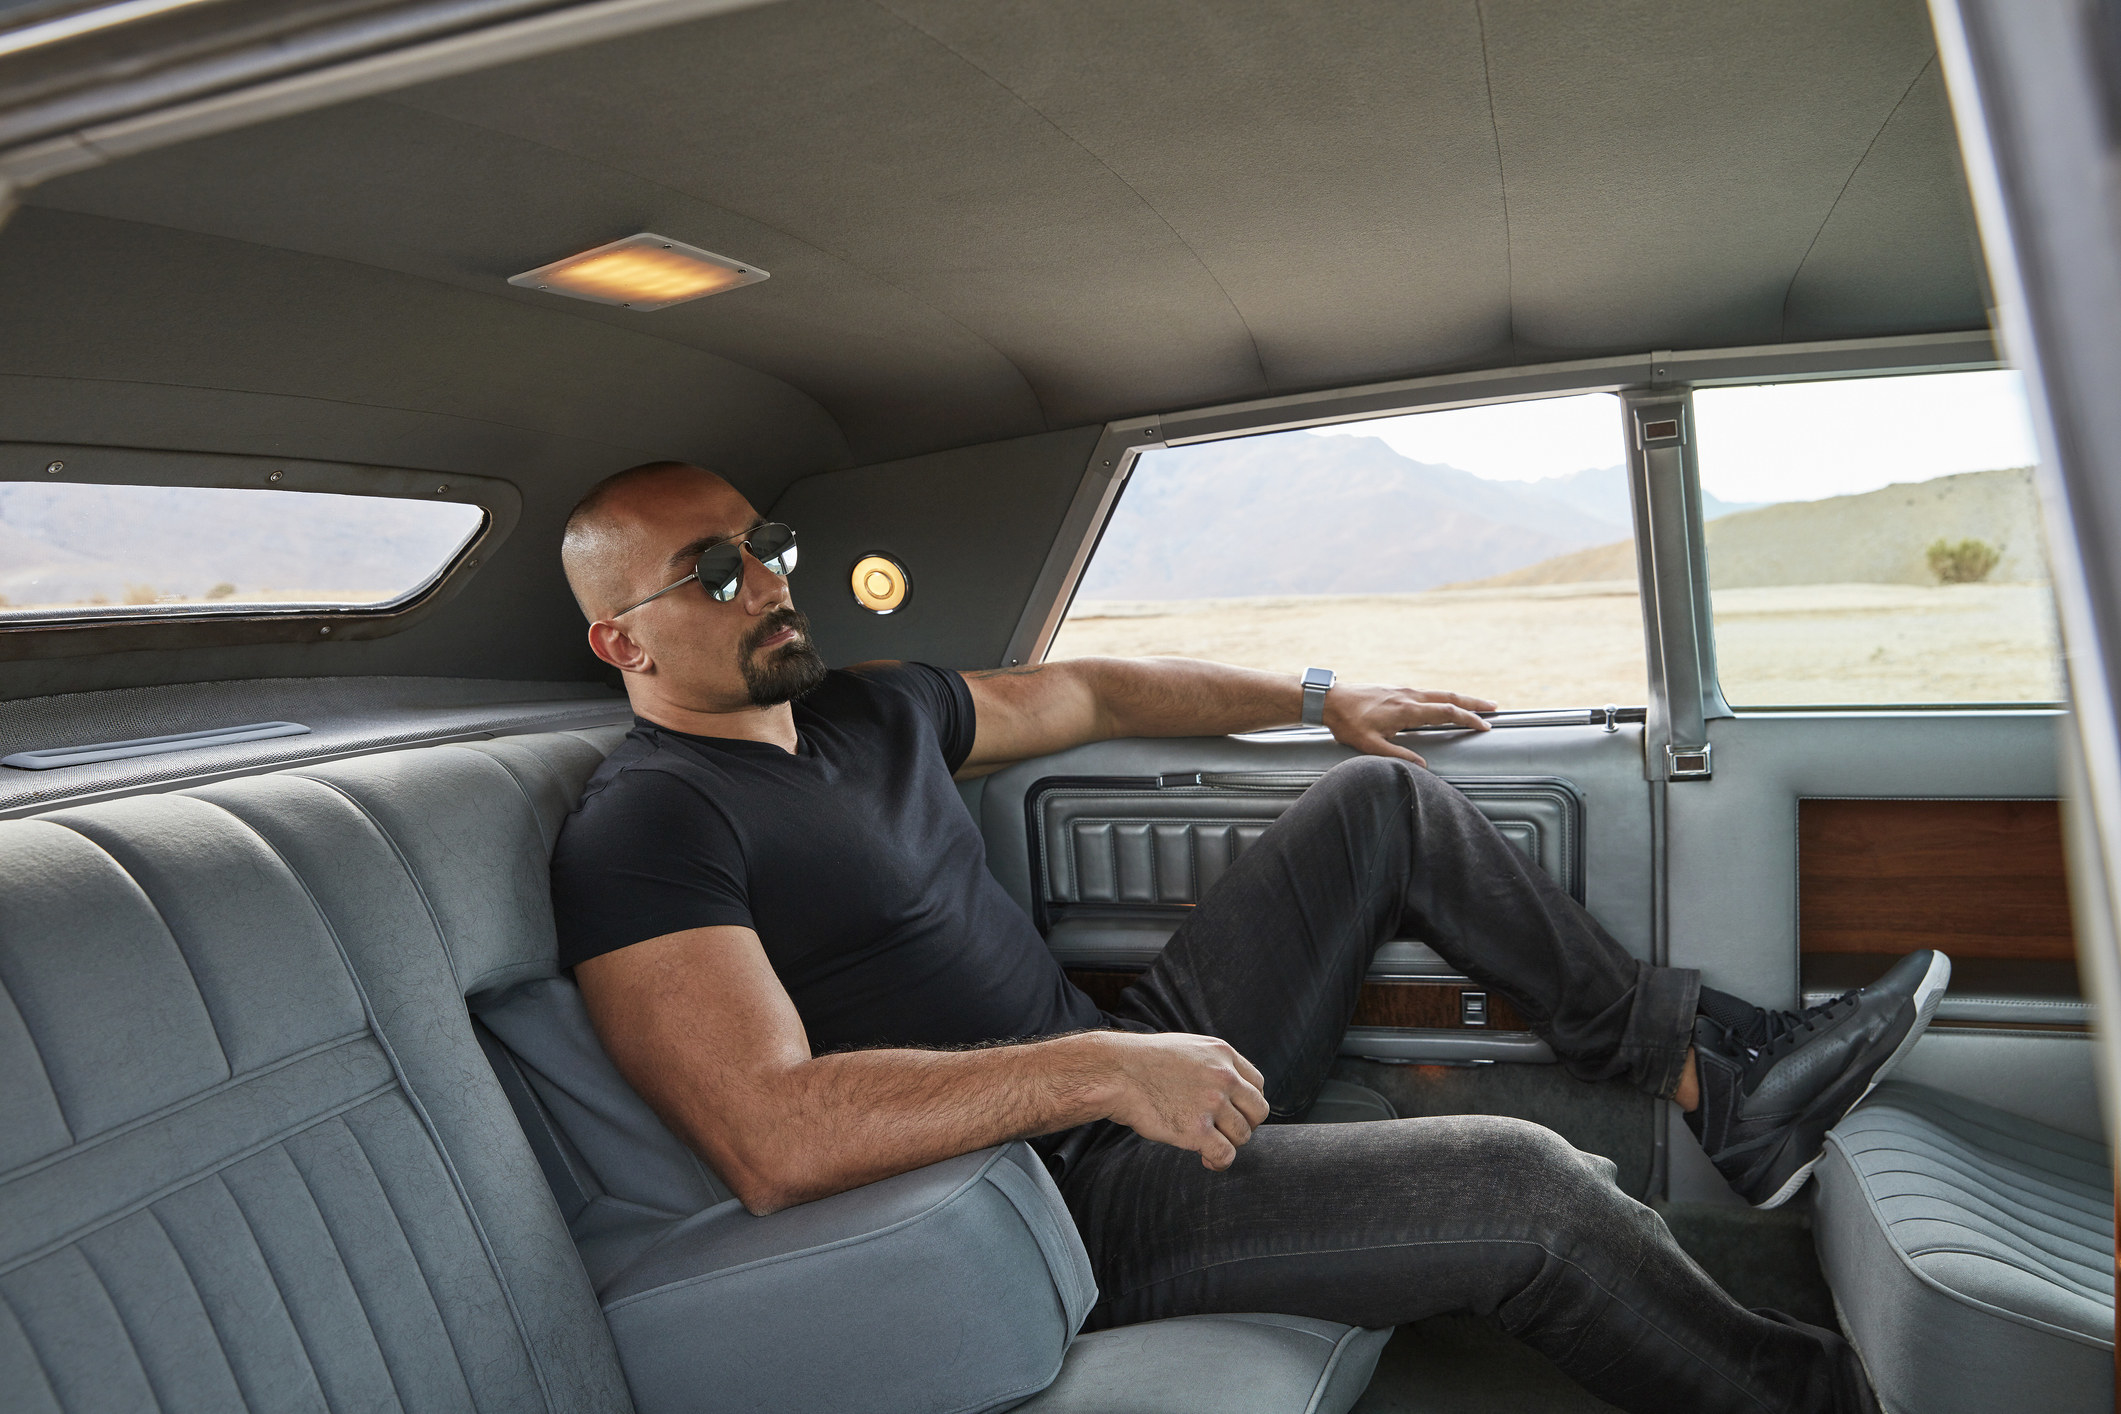 A man wearing sunglasses and lounging in the back of a spacious and expensive car